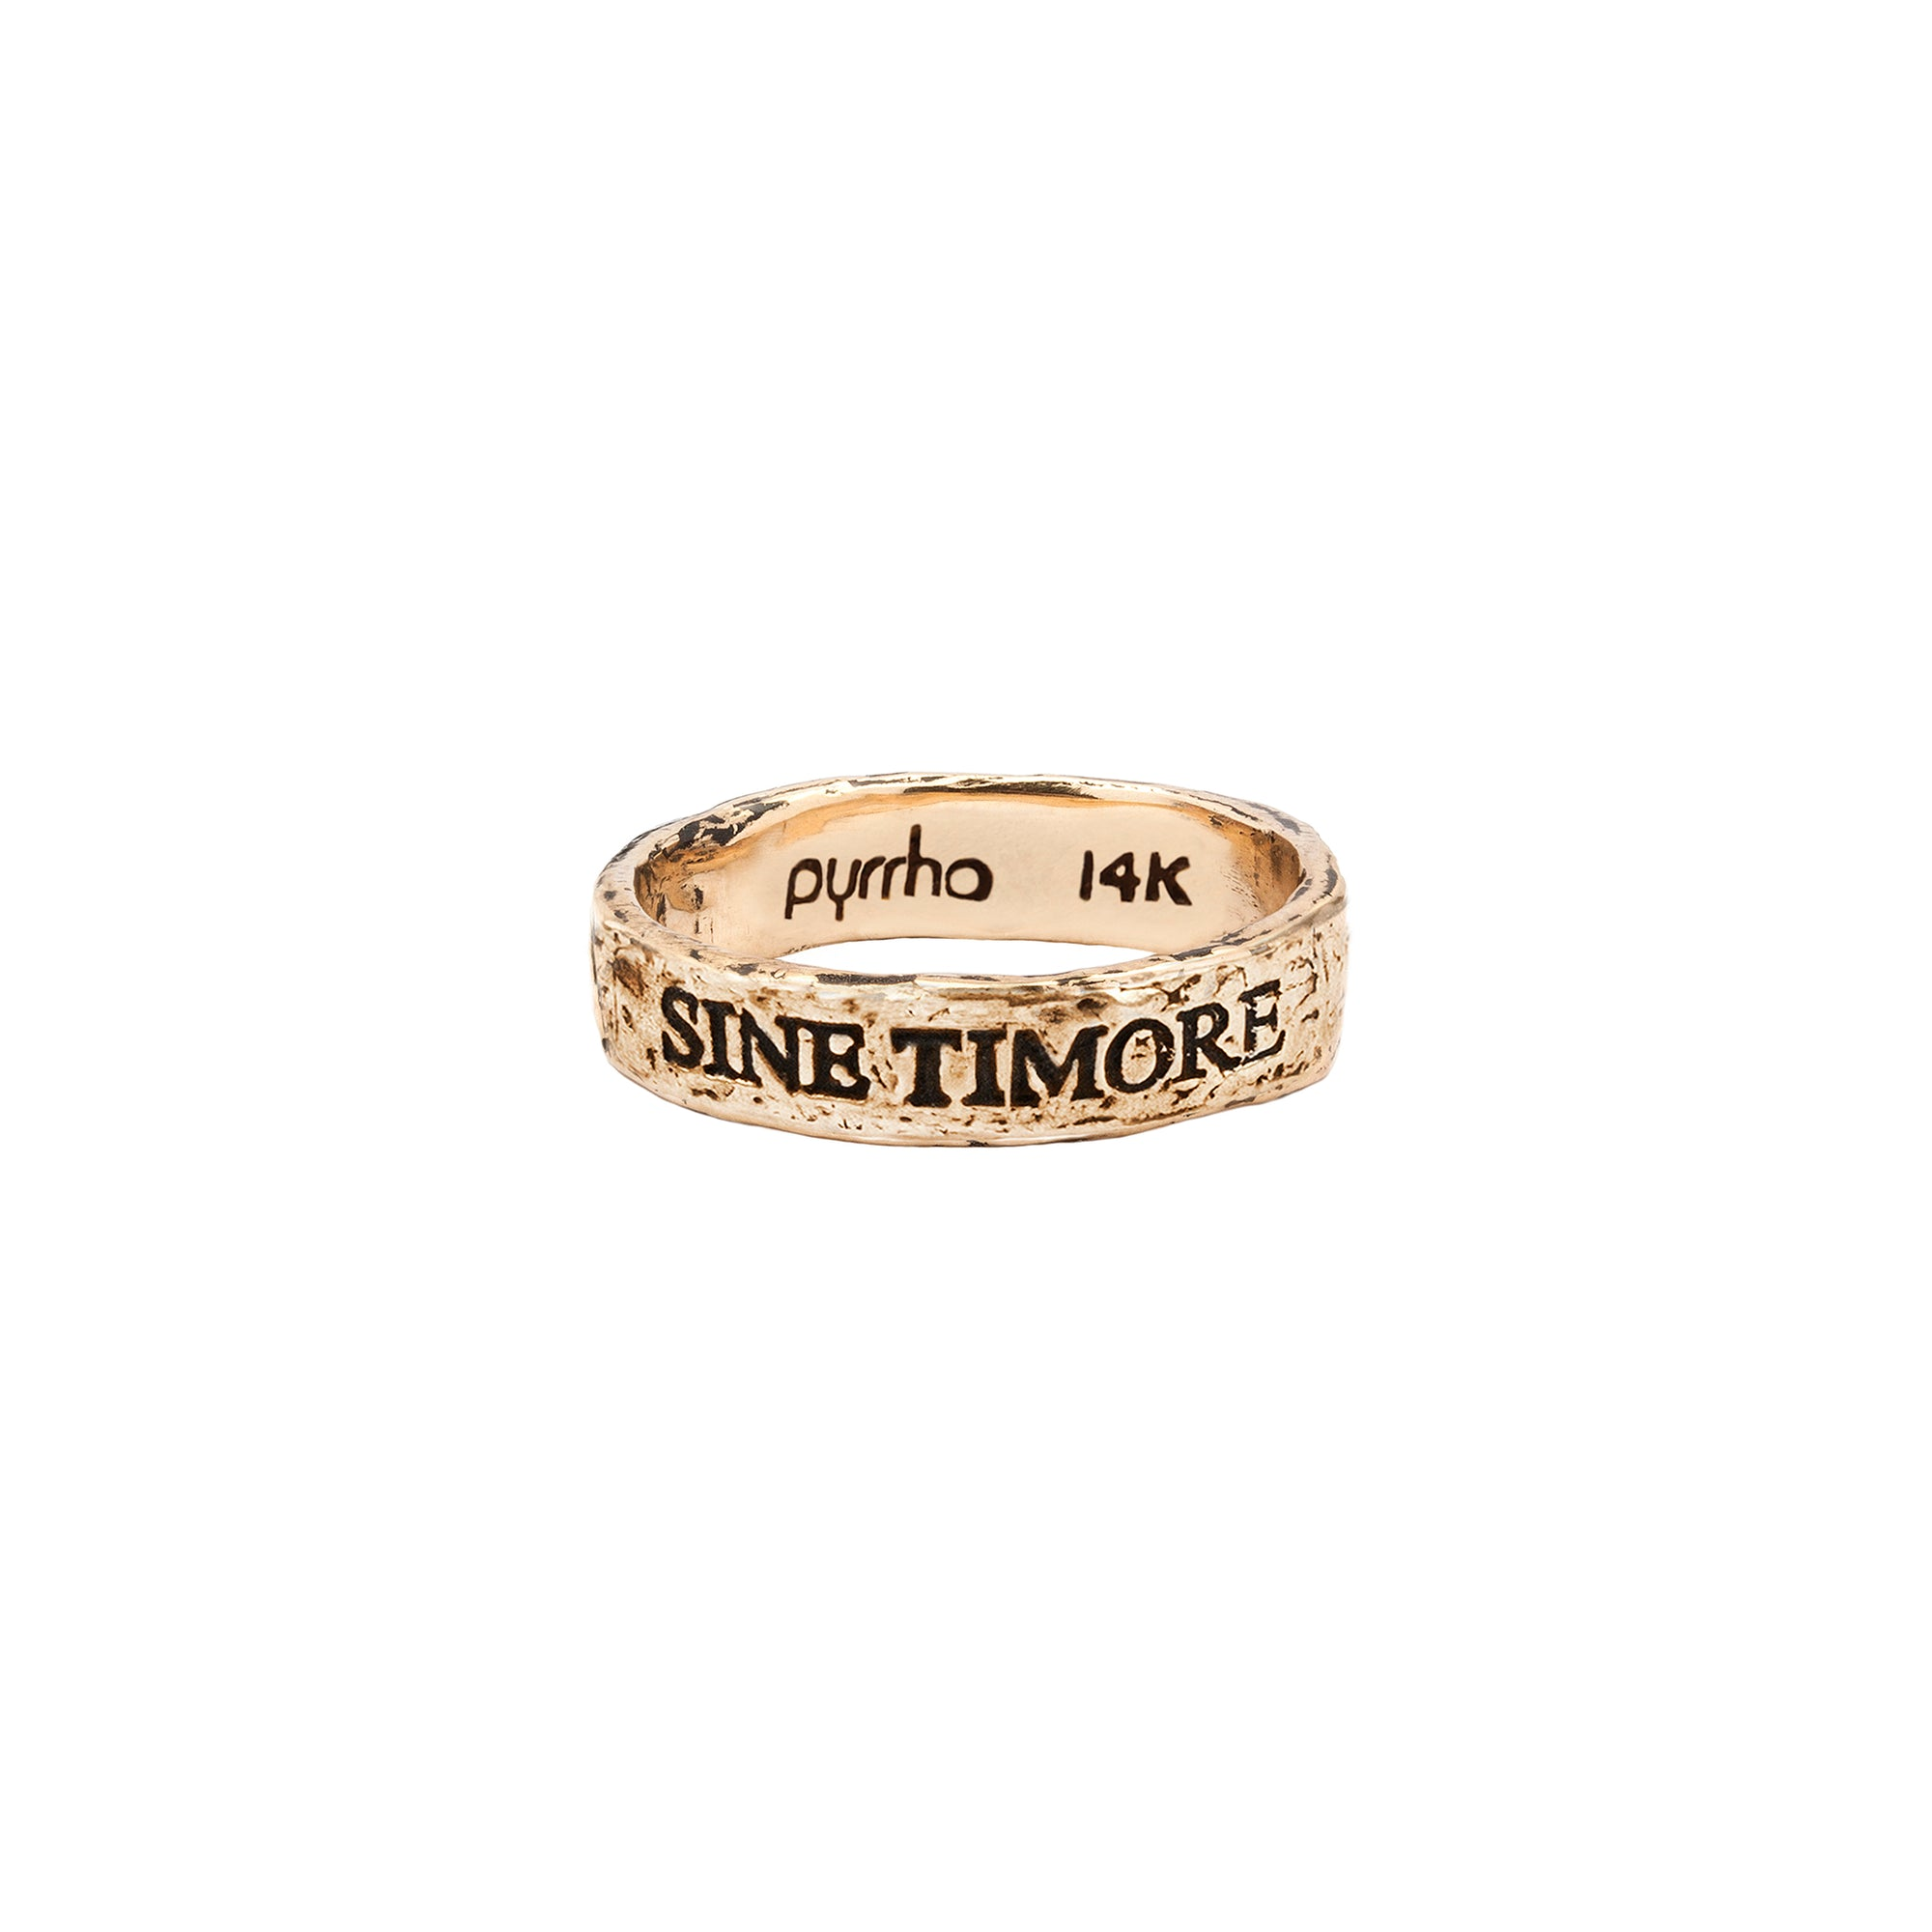 Pyrrha 14k sine Timor latin motto band ring